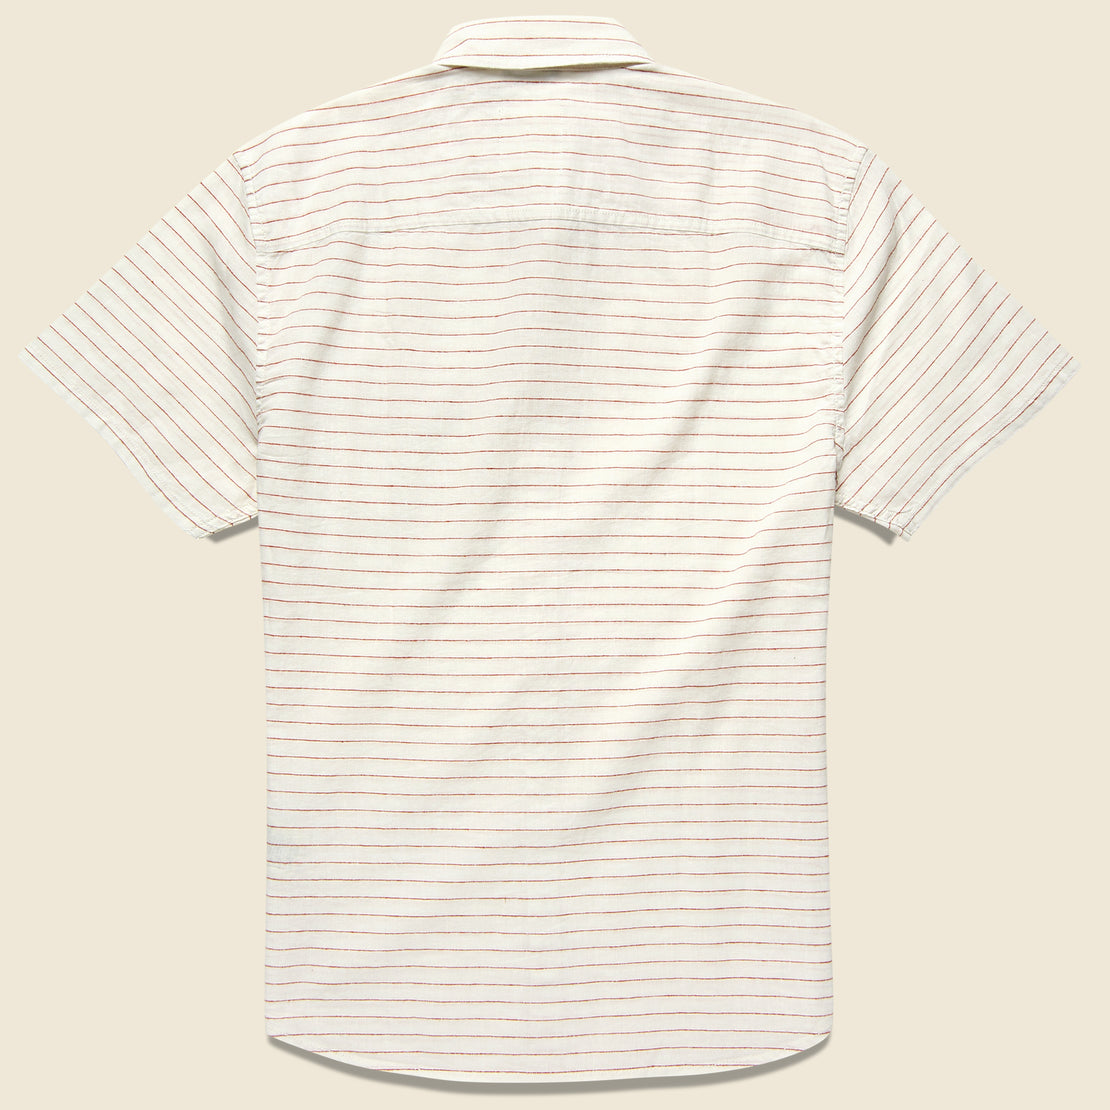 Masaryk Shirt - White